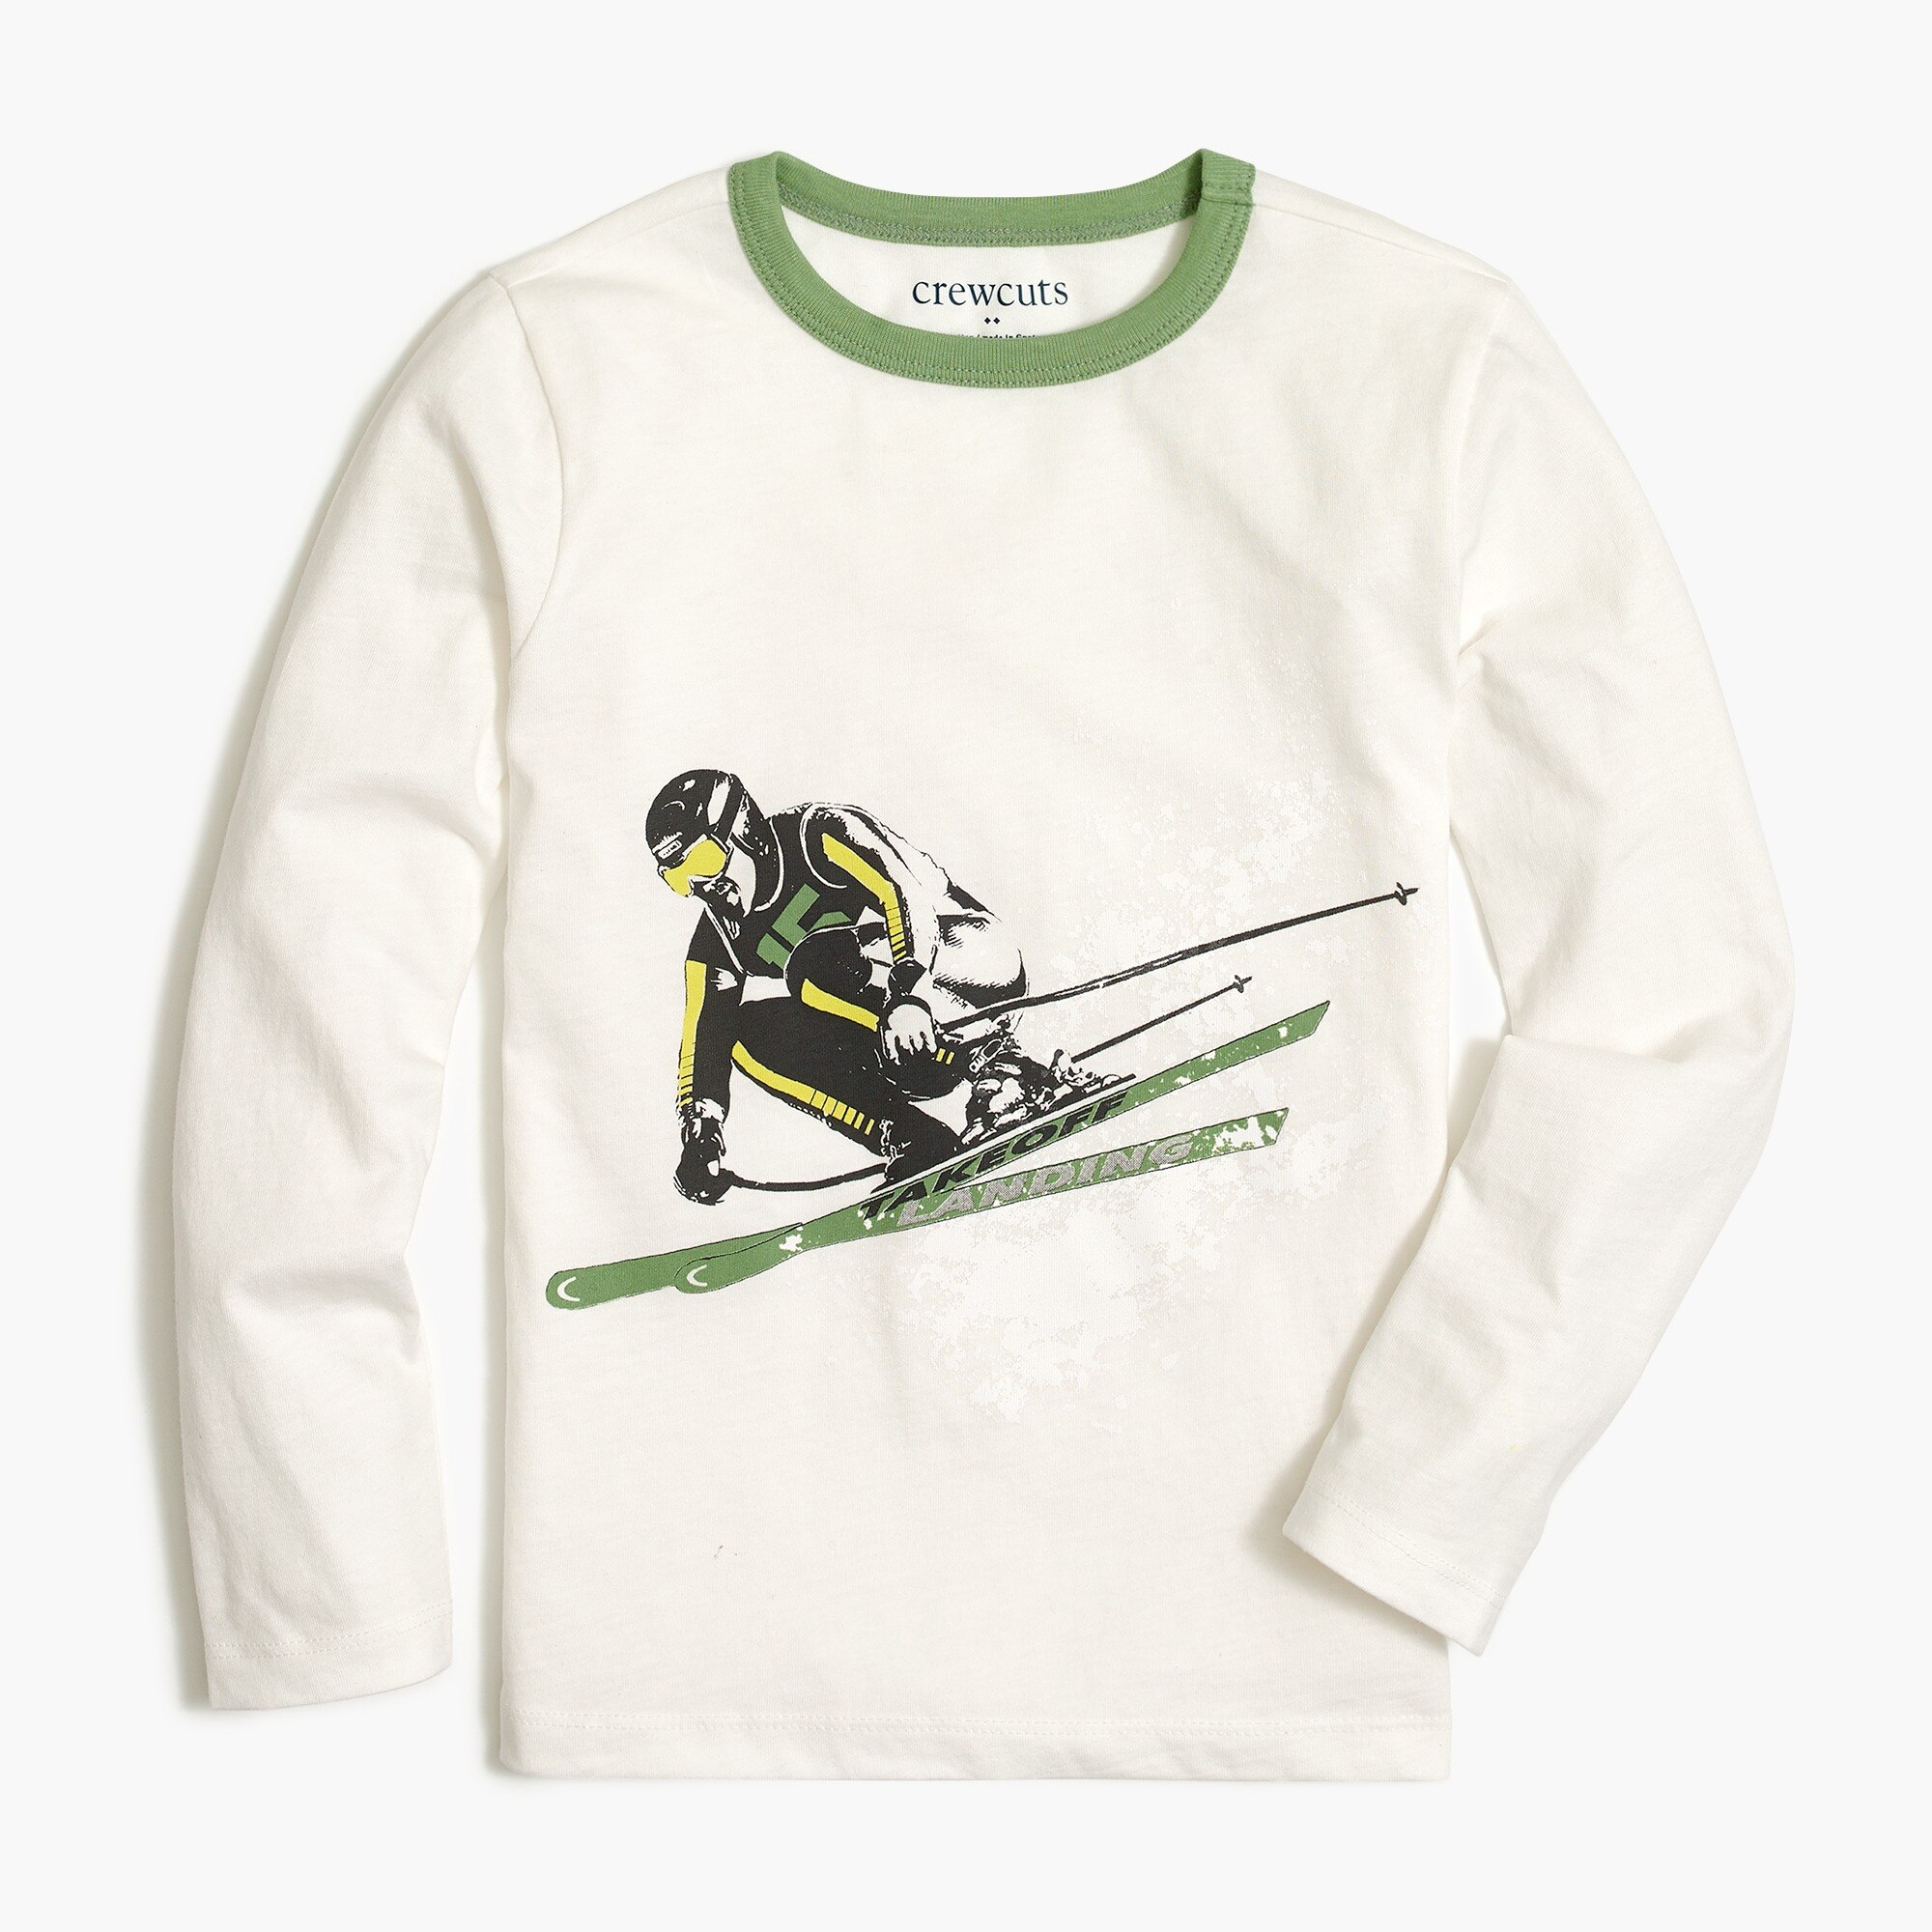 factory boys Boys' skiier raglan graphic T-shirt